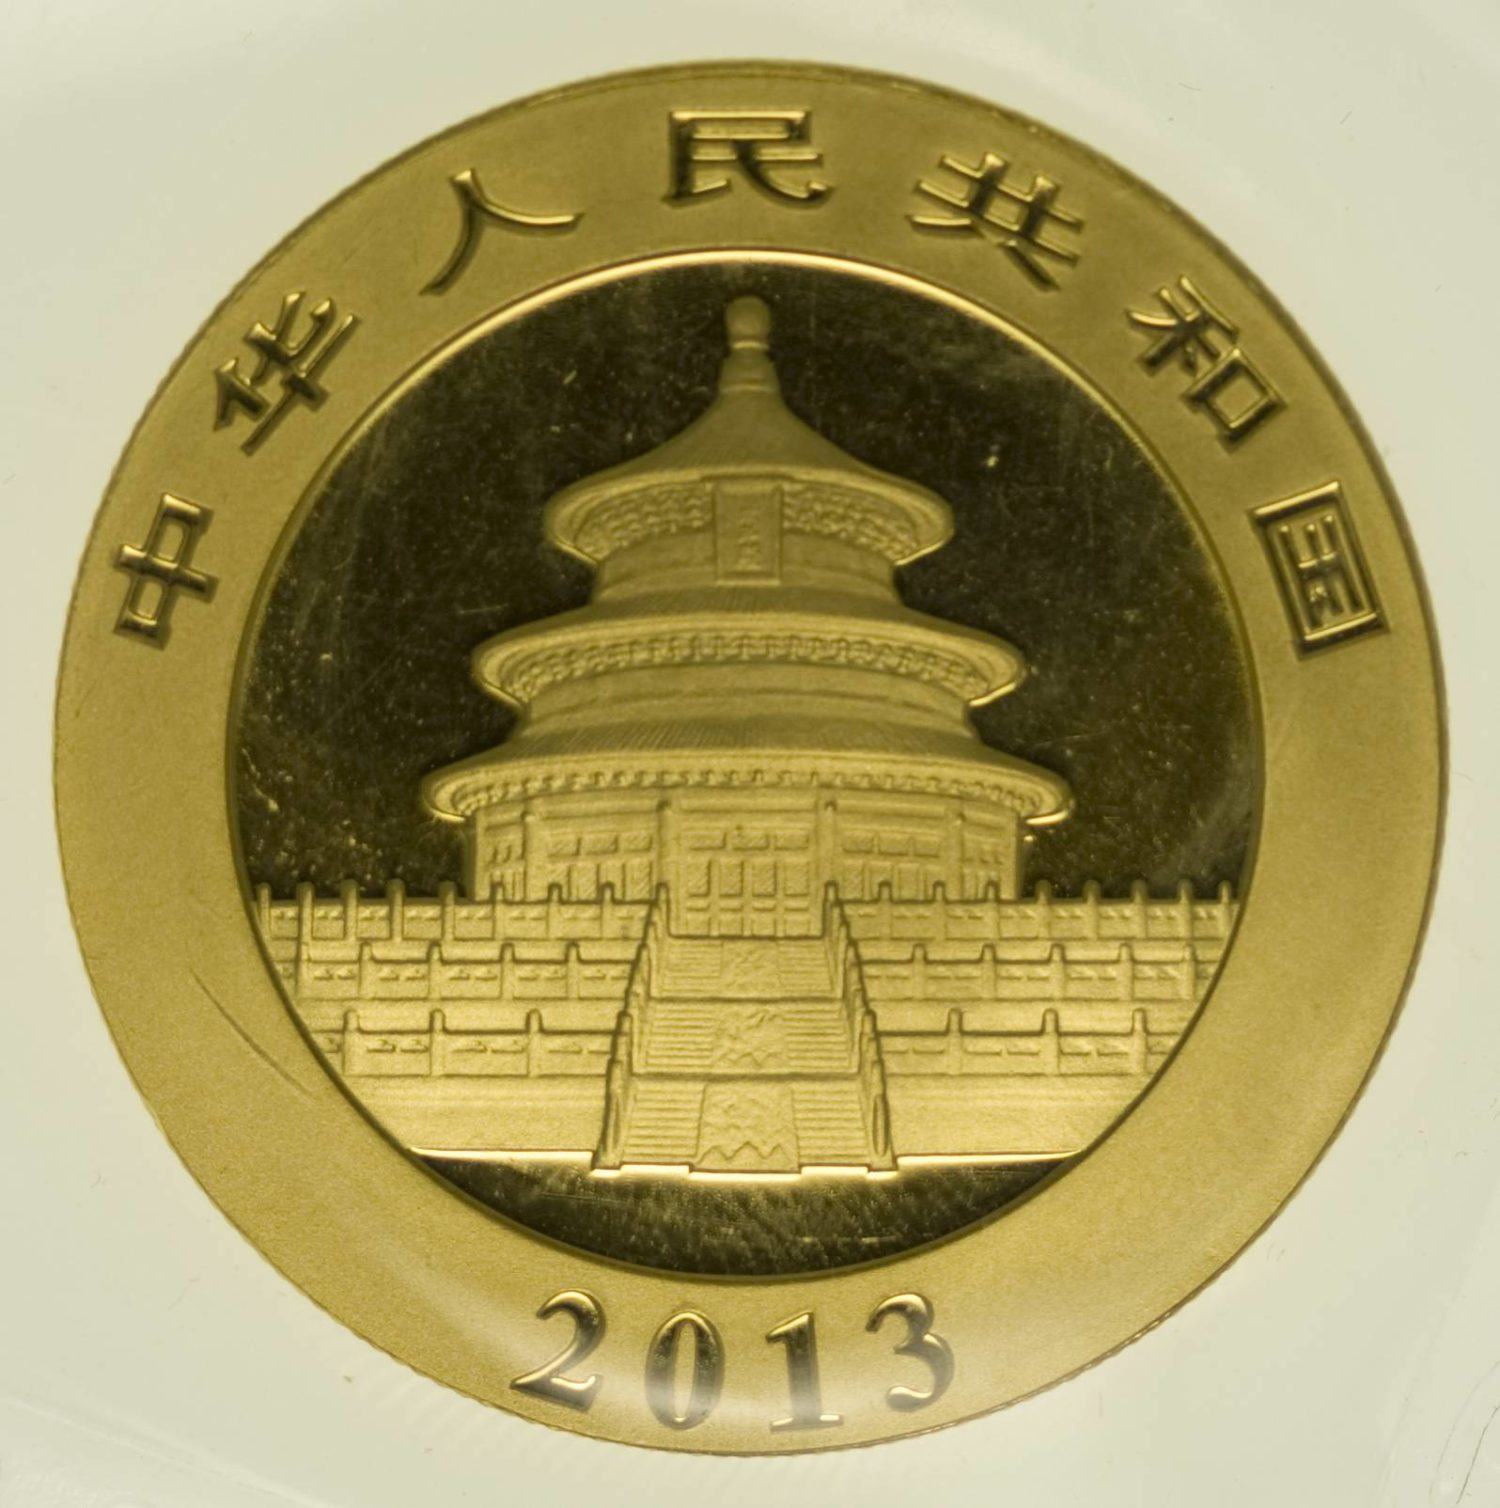 1 Unze Goldmünze China Panda 2013 500 Yuan 31,1 Gramm Gold RAR